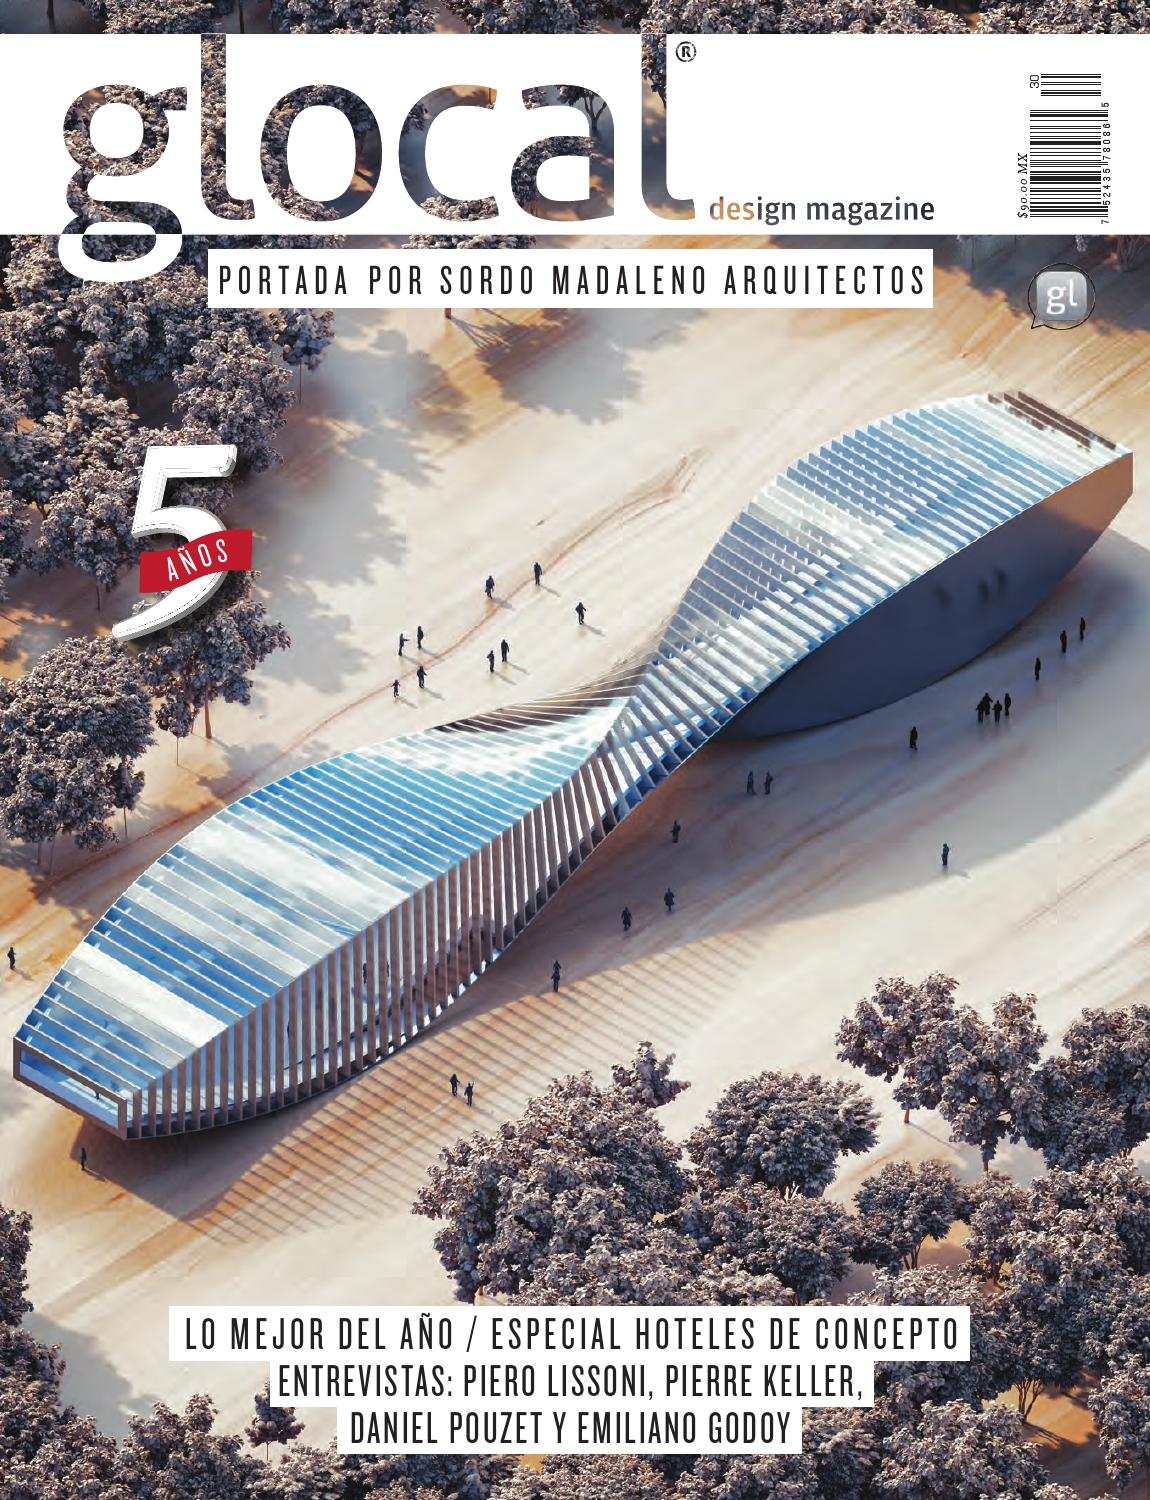 GLOCAL DESIGN MAGAZINE No.30 Portada por   Cover by  SORDO MADALENO  ARQUITECTOS by GLOCAL DESIGN MAGAZINE - issuu b8d41089486